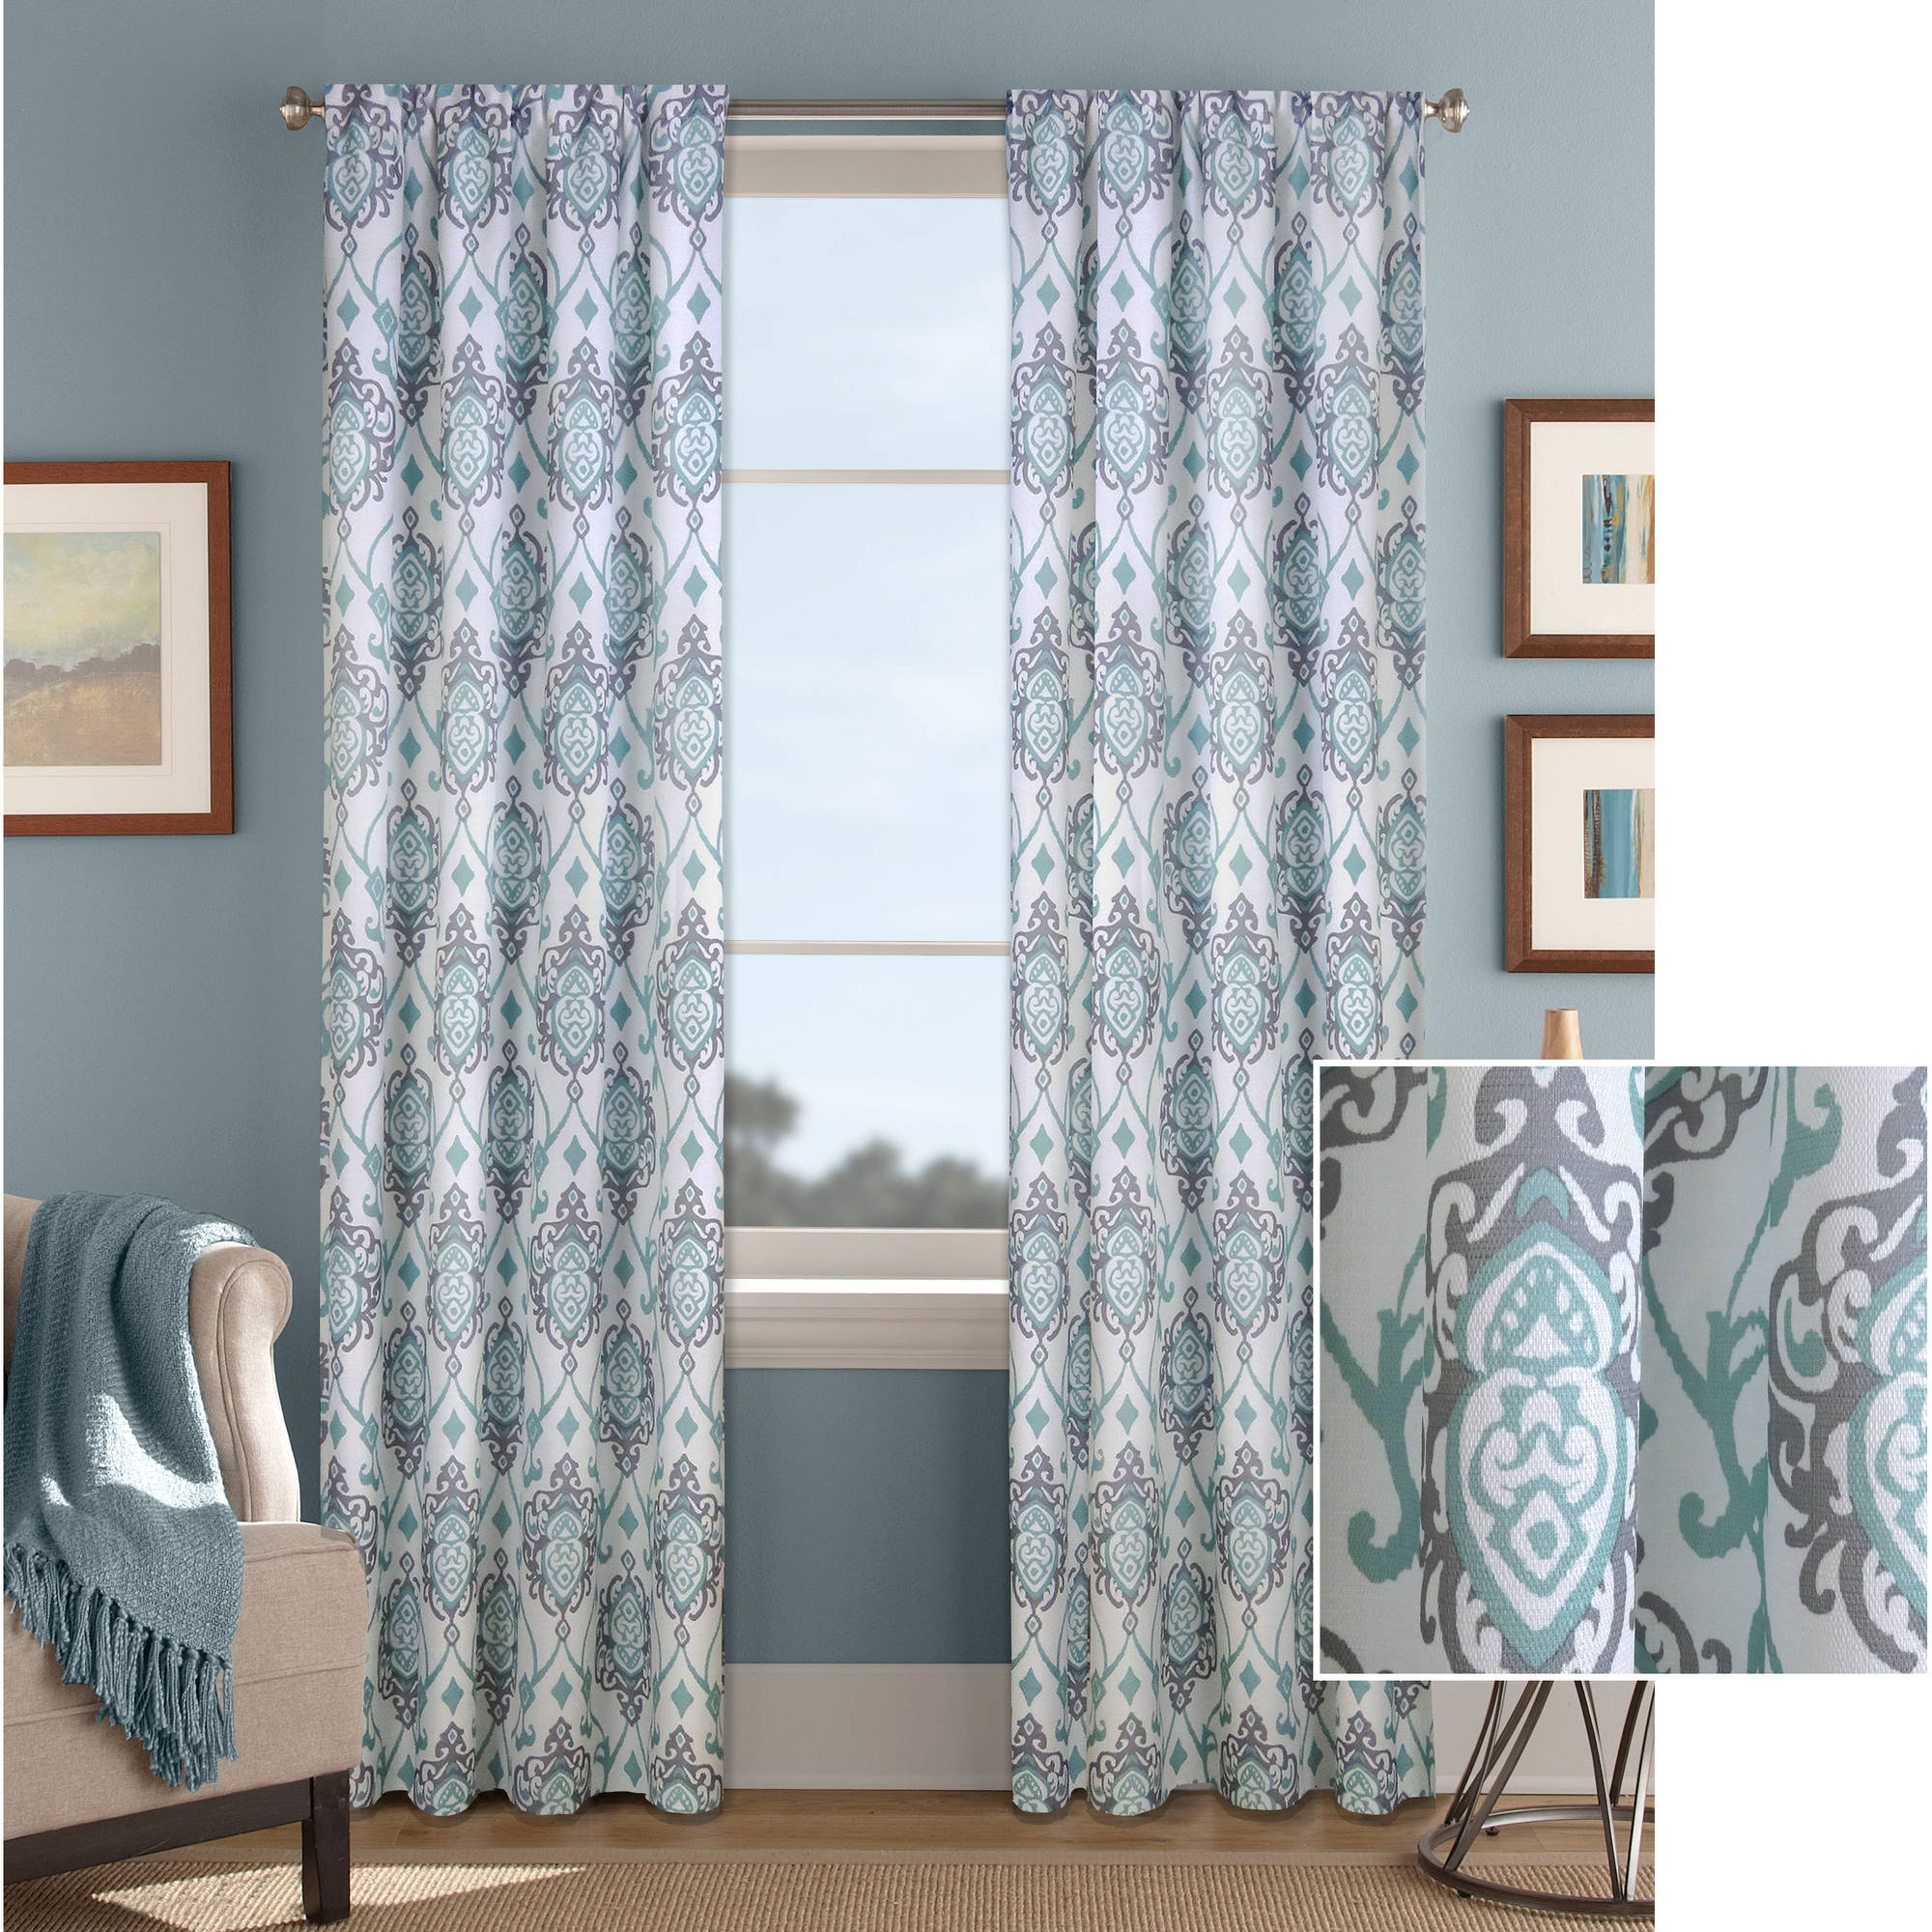 in pinch design and elegant royalty kids from eyelet valance paired rod with floral taste pleat curtains curtain majesty unique the a plain majestic gold sheer index blackout drapes have holistic of these appearance room pleats blue